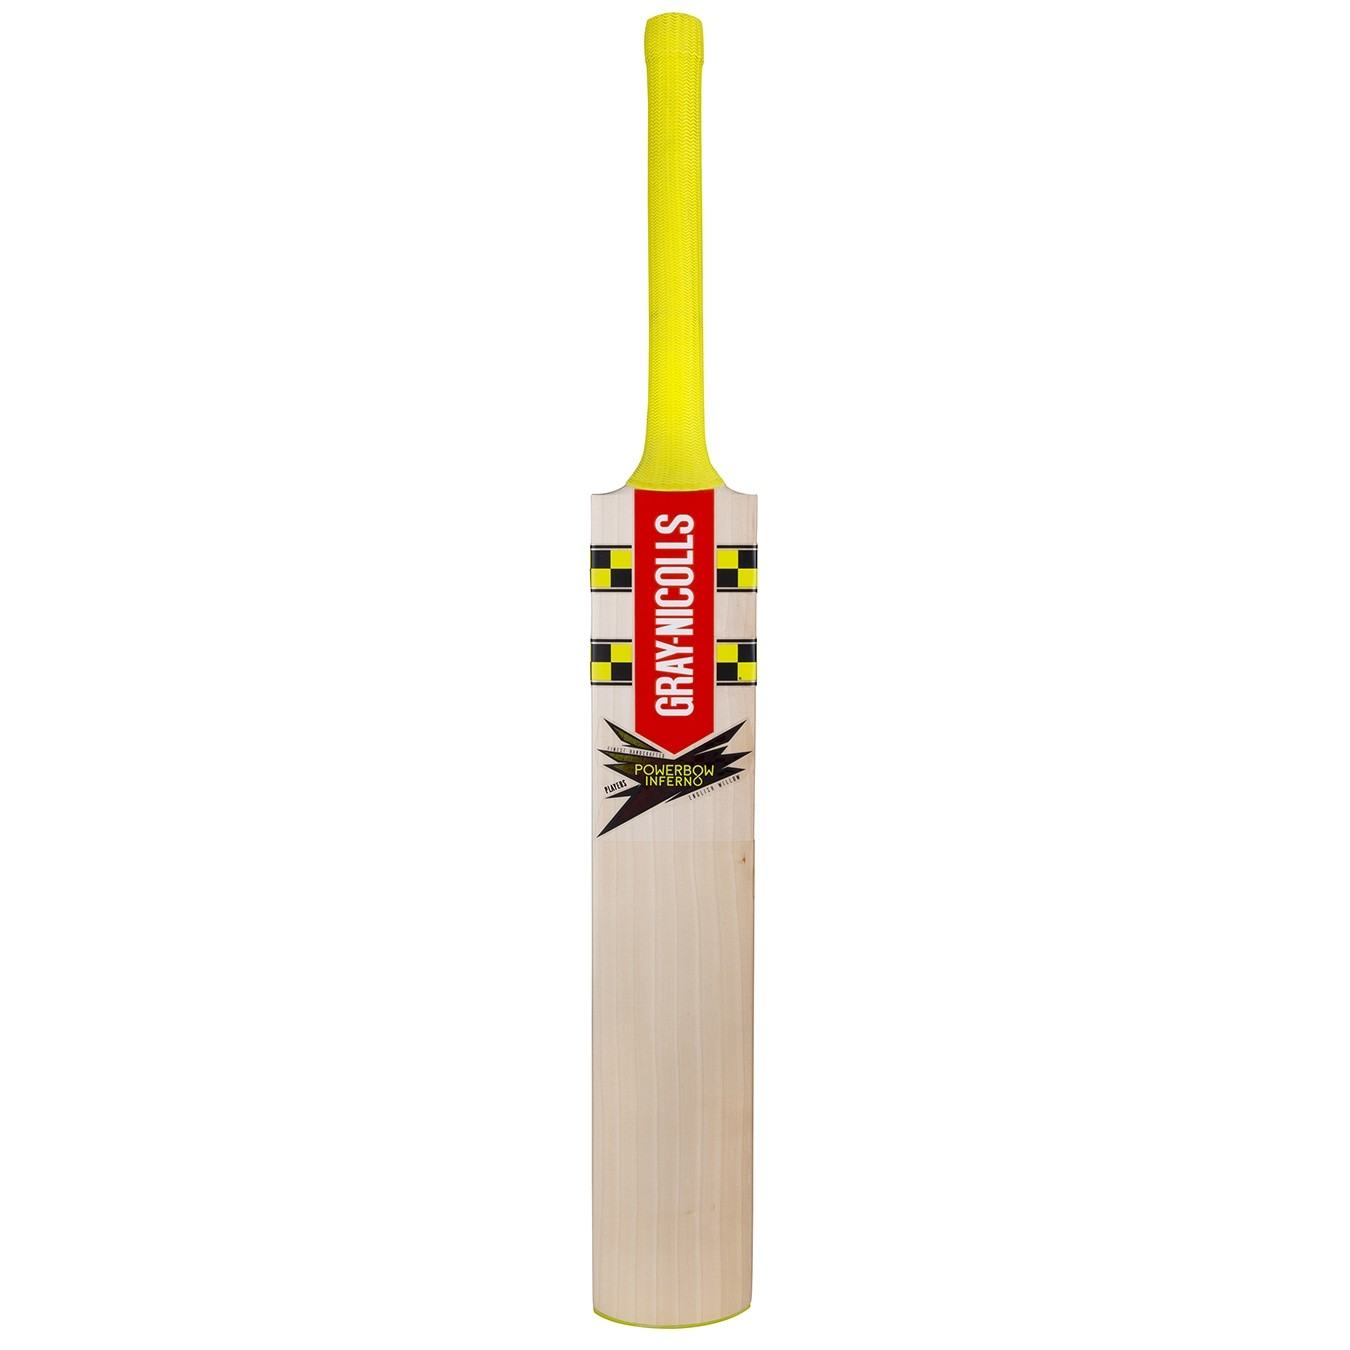 2021 Gray Nicolls Powerbow Inferno 4 Star Cricket Bat